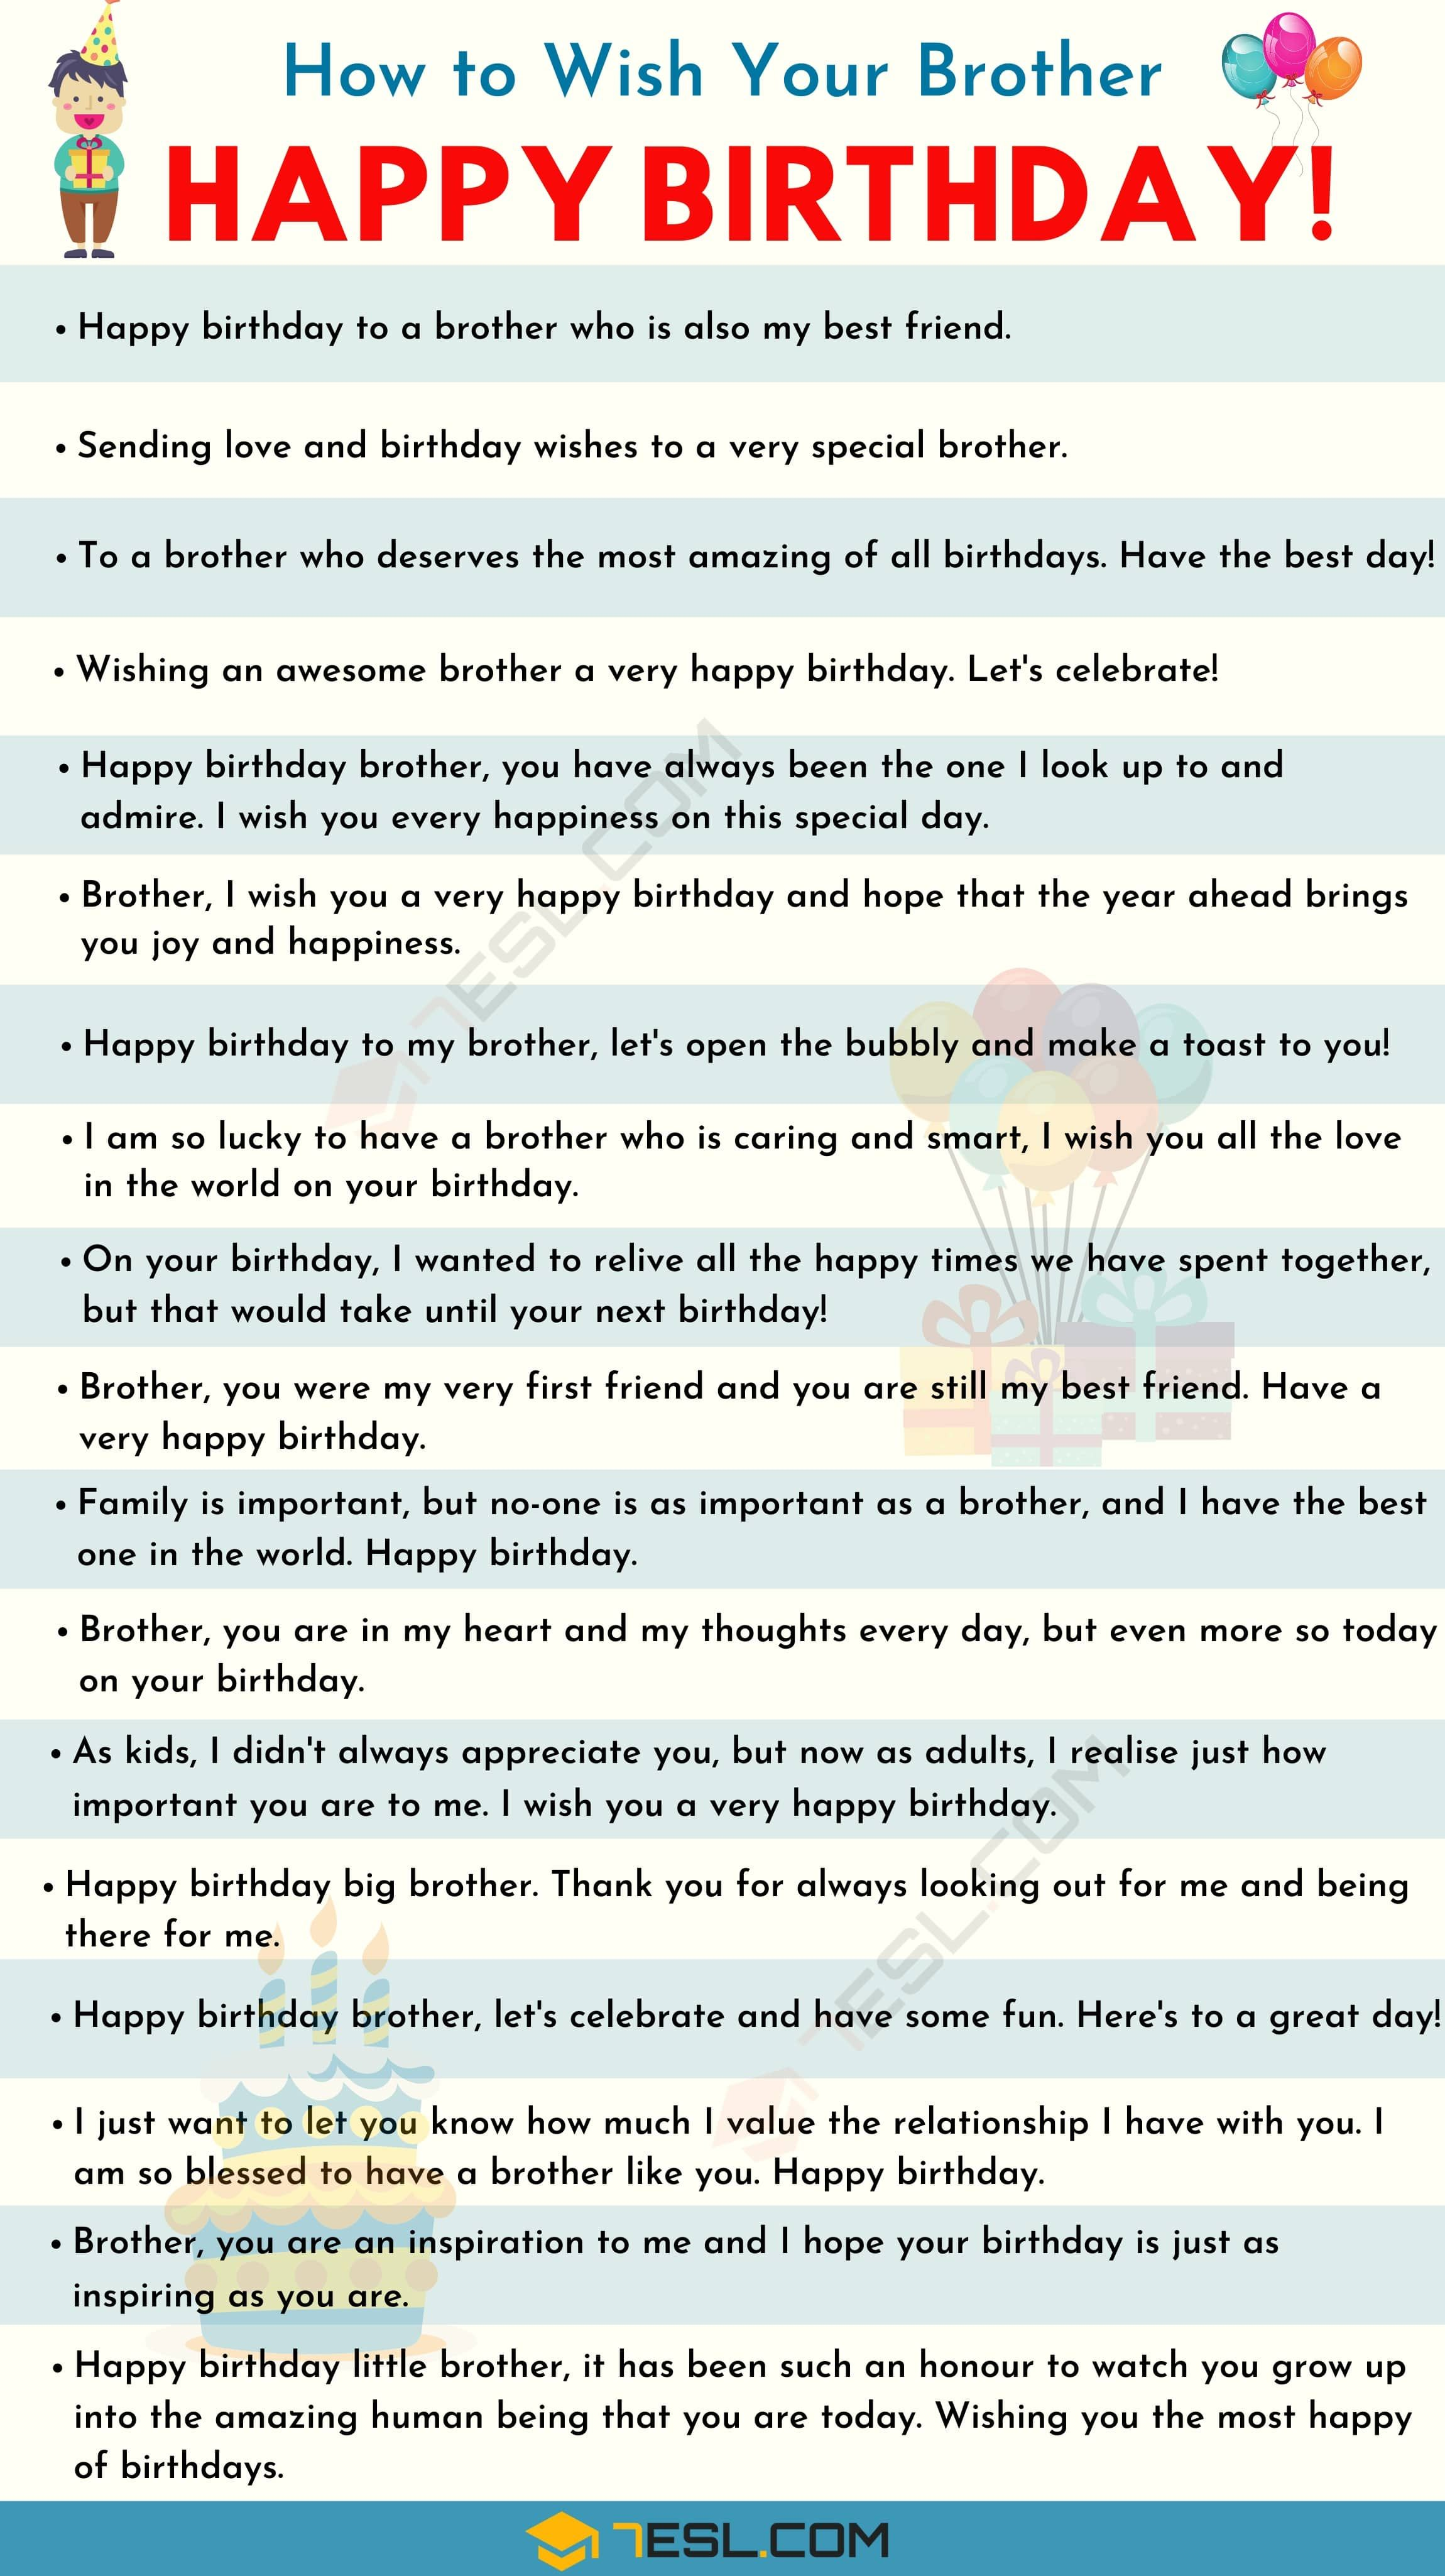 Birthday Wishes 500 Meaningful Happy Birthday Messages For Everyone 7esl Happy Birthday Brother Messages Birthday Wishes For Brother Happy Birthday Brother Quotes